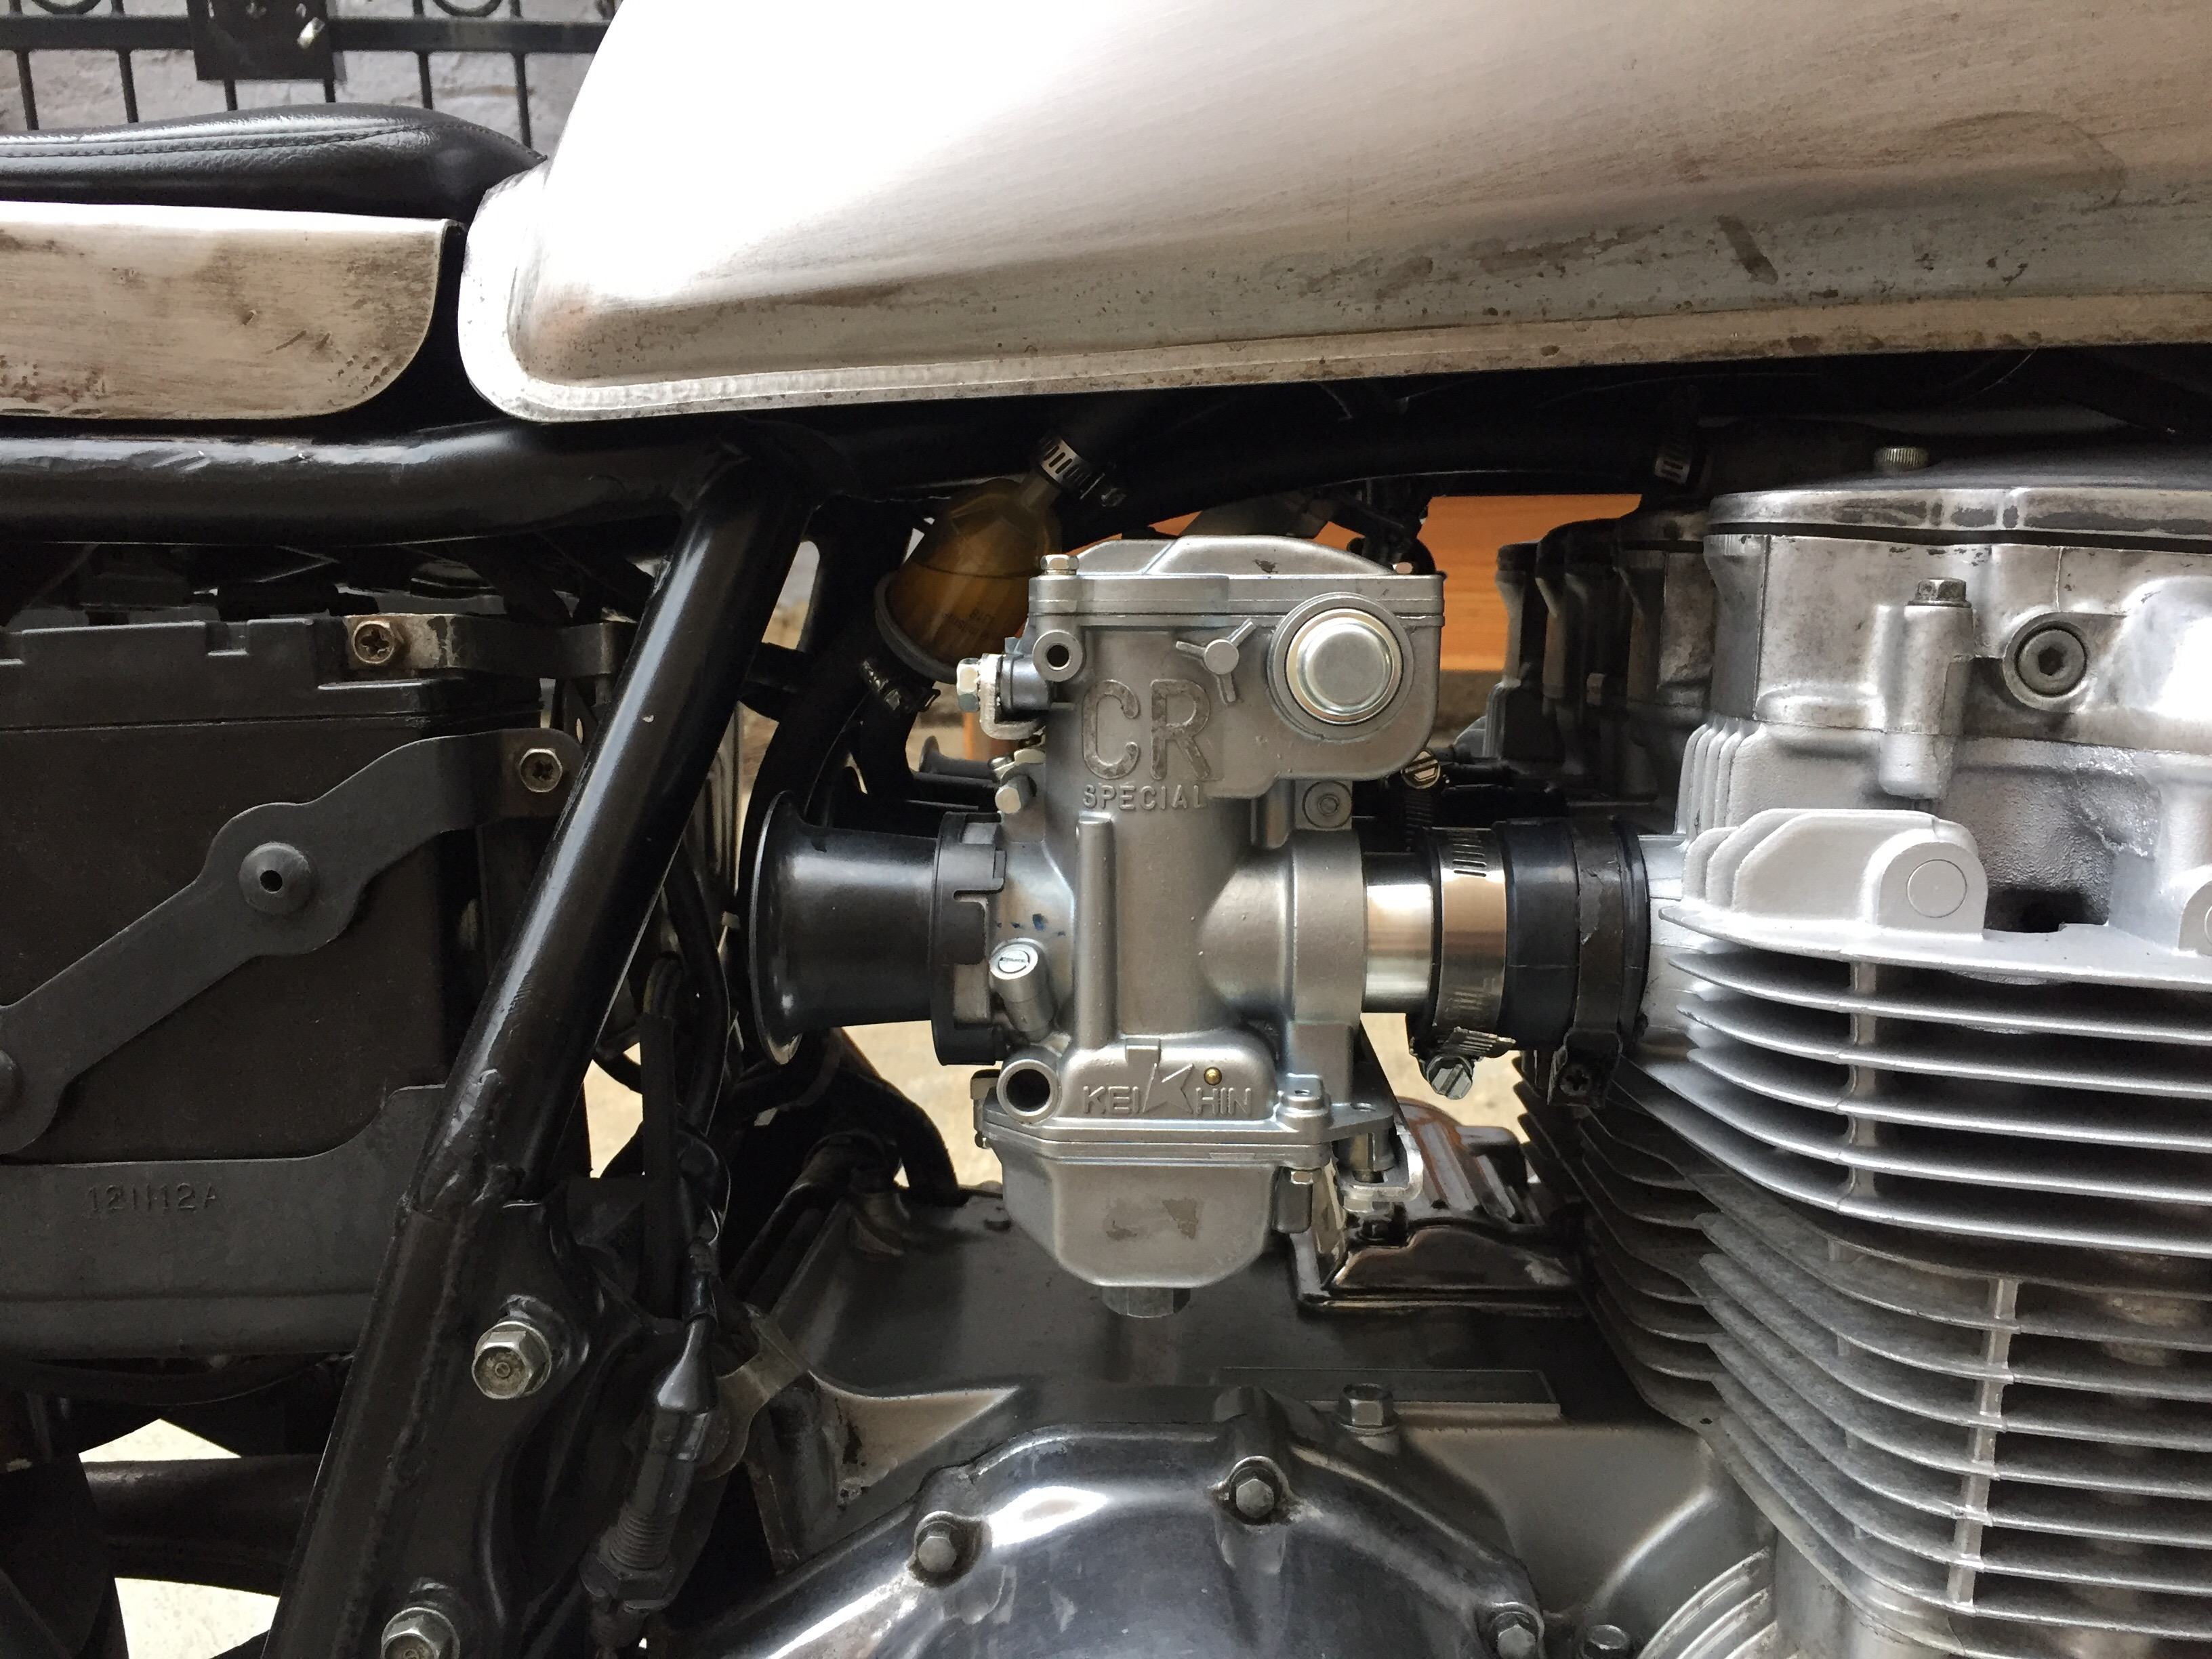 cb650 keihin crs29 carbs - Chin on the Tank – Motorcycle